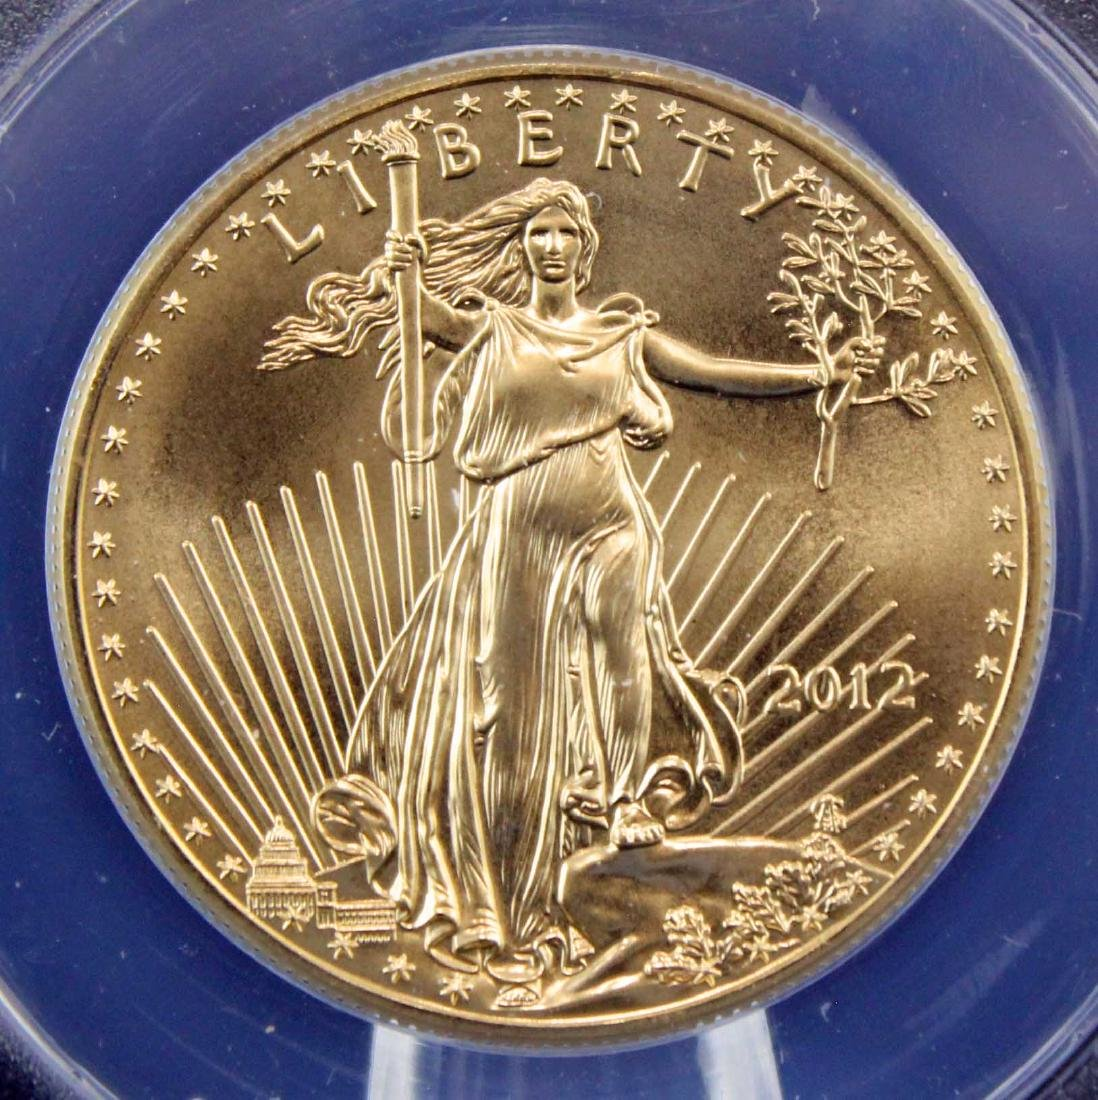 2012 Gold Eagle $50 Coin 1 Troy Oz.  ANACS MS 70 - 2